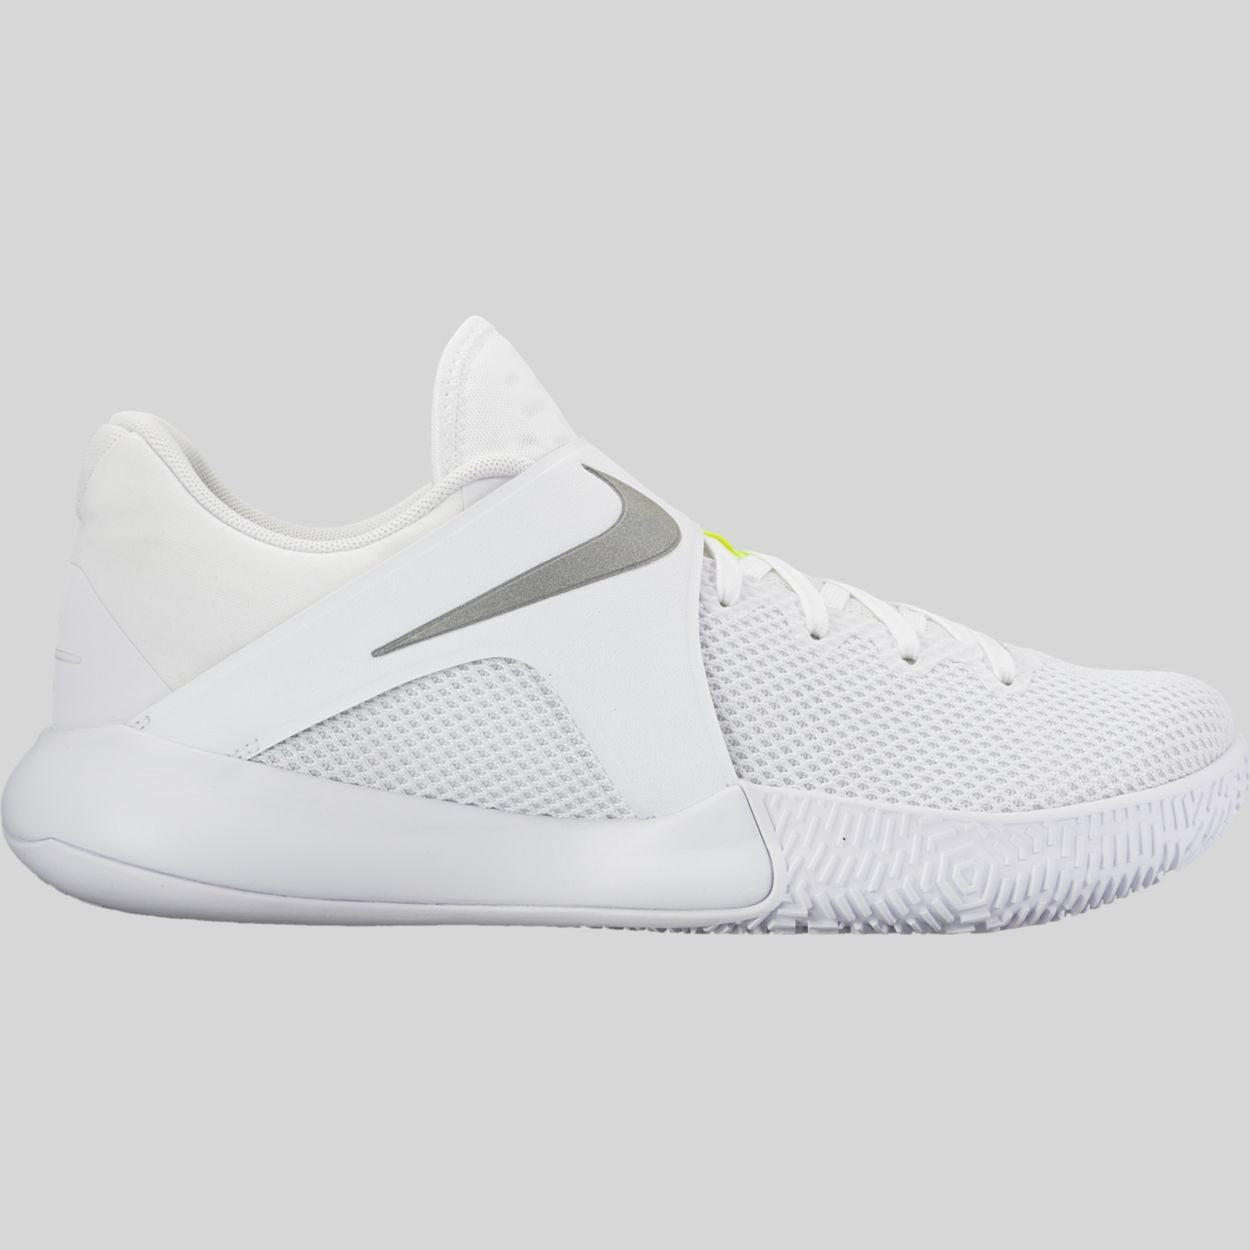 low priced b2d8f 2a89e Nike Zoom Live EP White Reflect Silver Volt (852420-117)